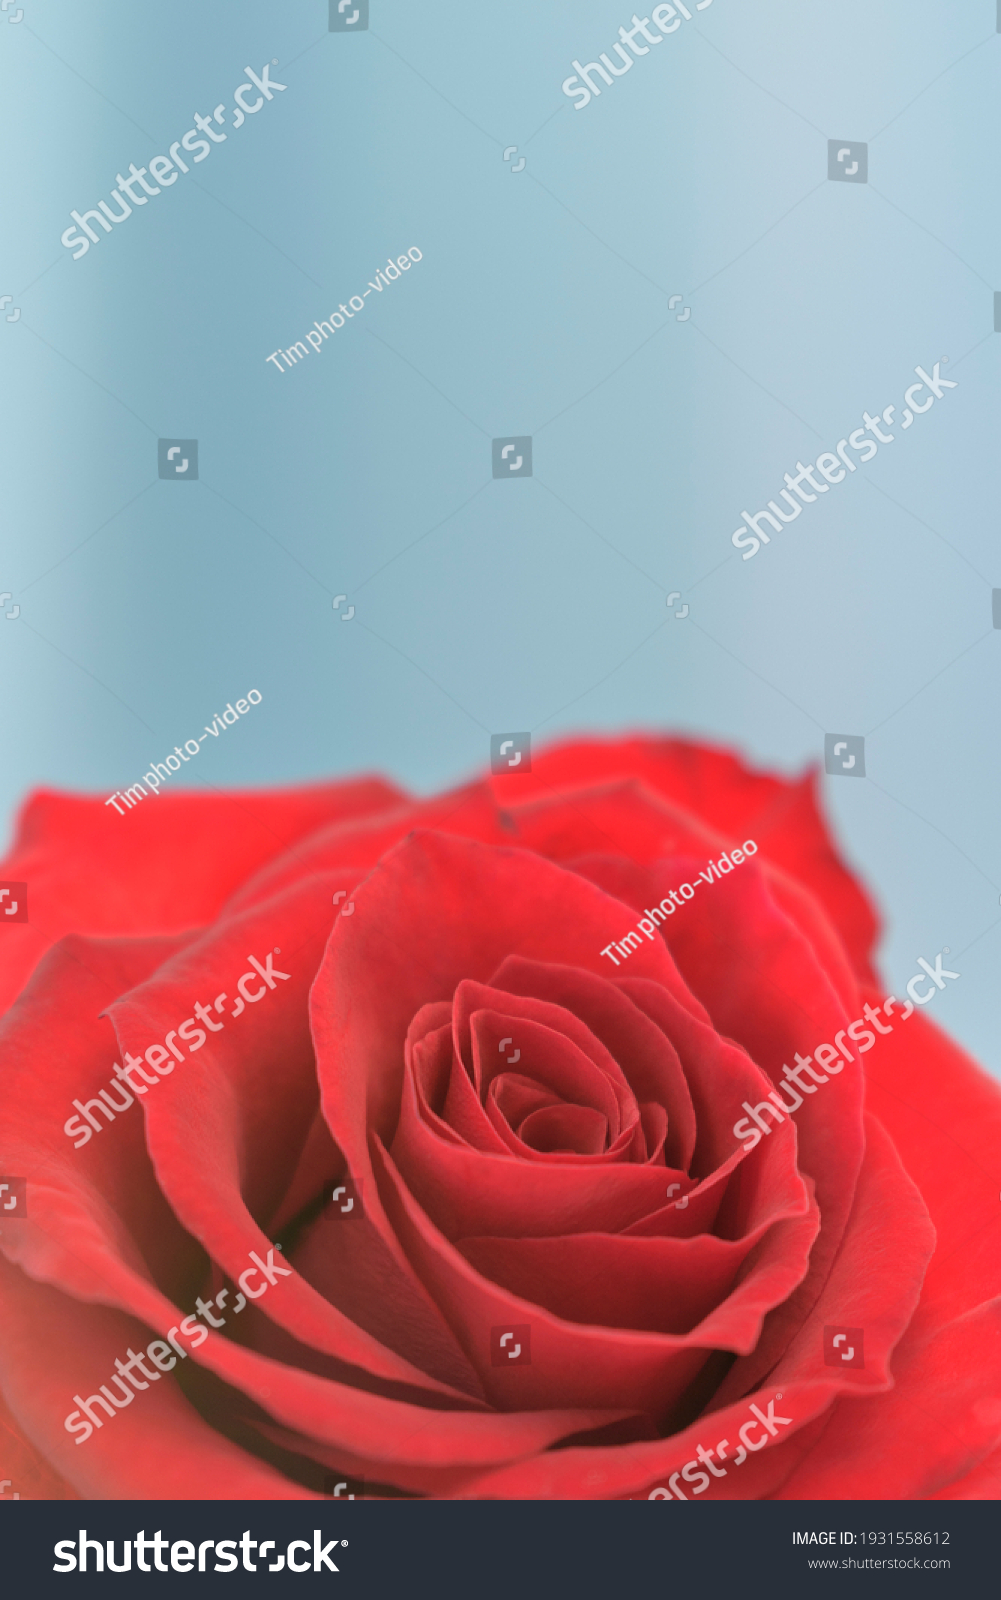 stock-photo-red-rose-close-up-of-a-bud-v